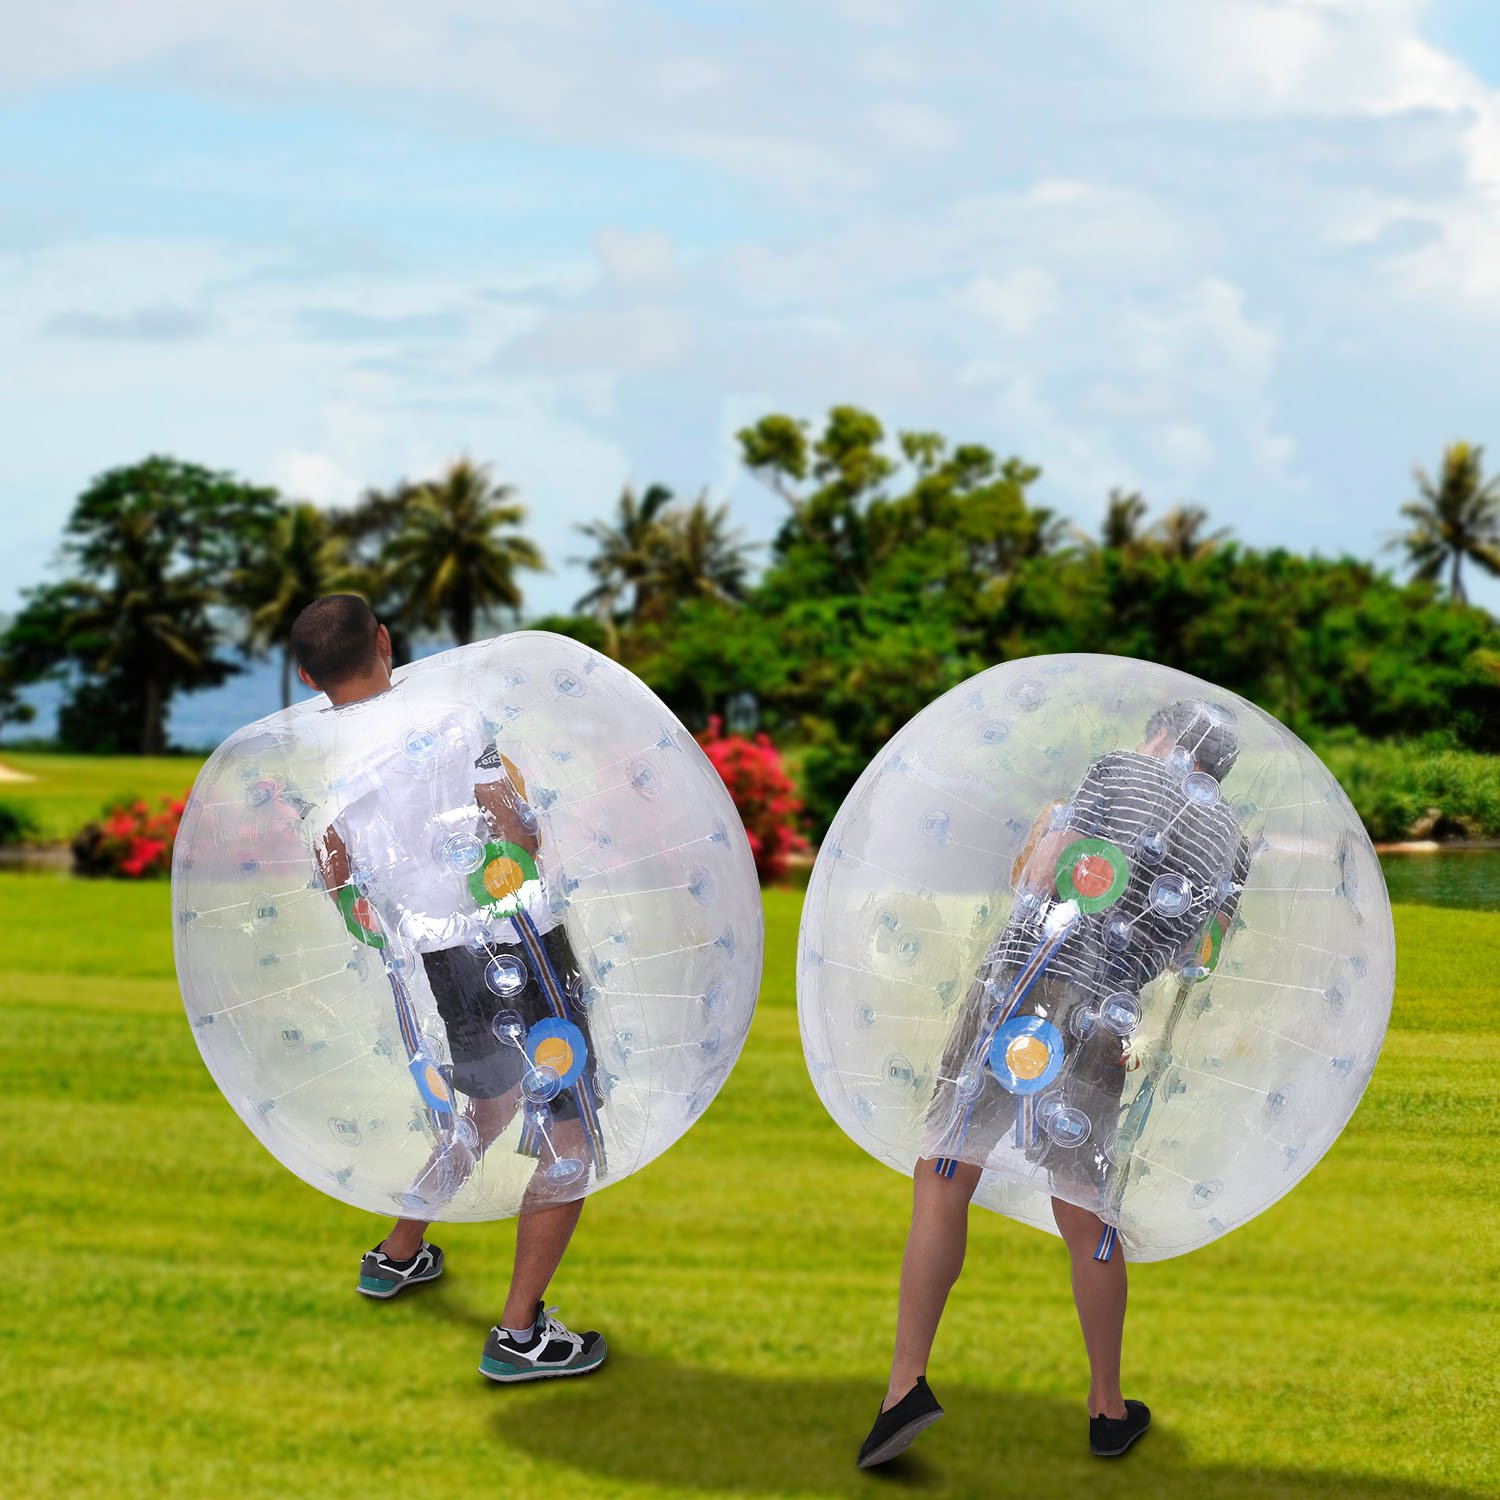 Inflatable Bumper Ball 1.2M 4FT/1.5M 5FT Diameter Bubble Soccer Ball Blow Up Toy, Inflatable Bumper Bubble Balls for Childs,teens,adults